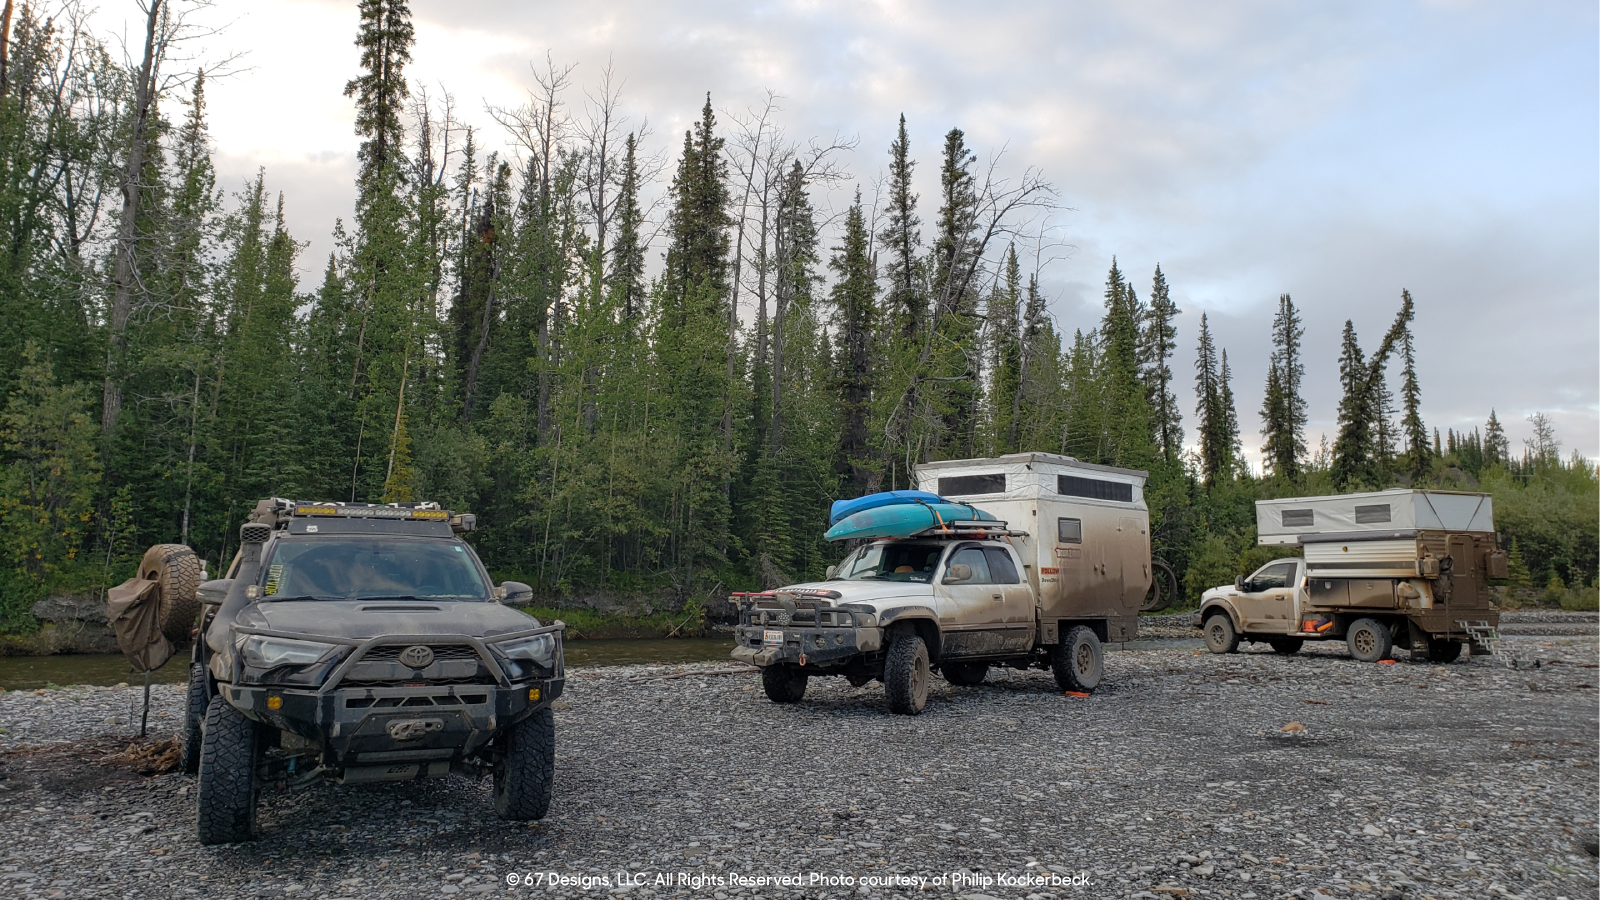 David's Jeep with other overlanding vehicles